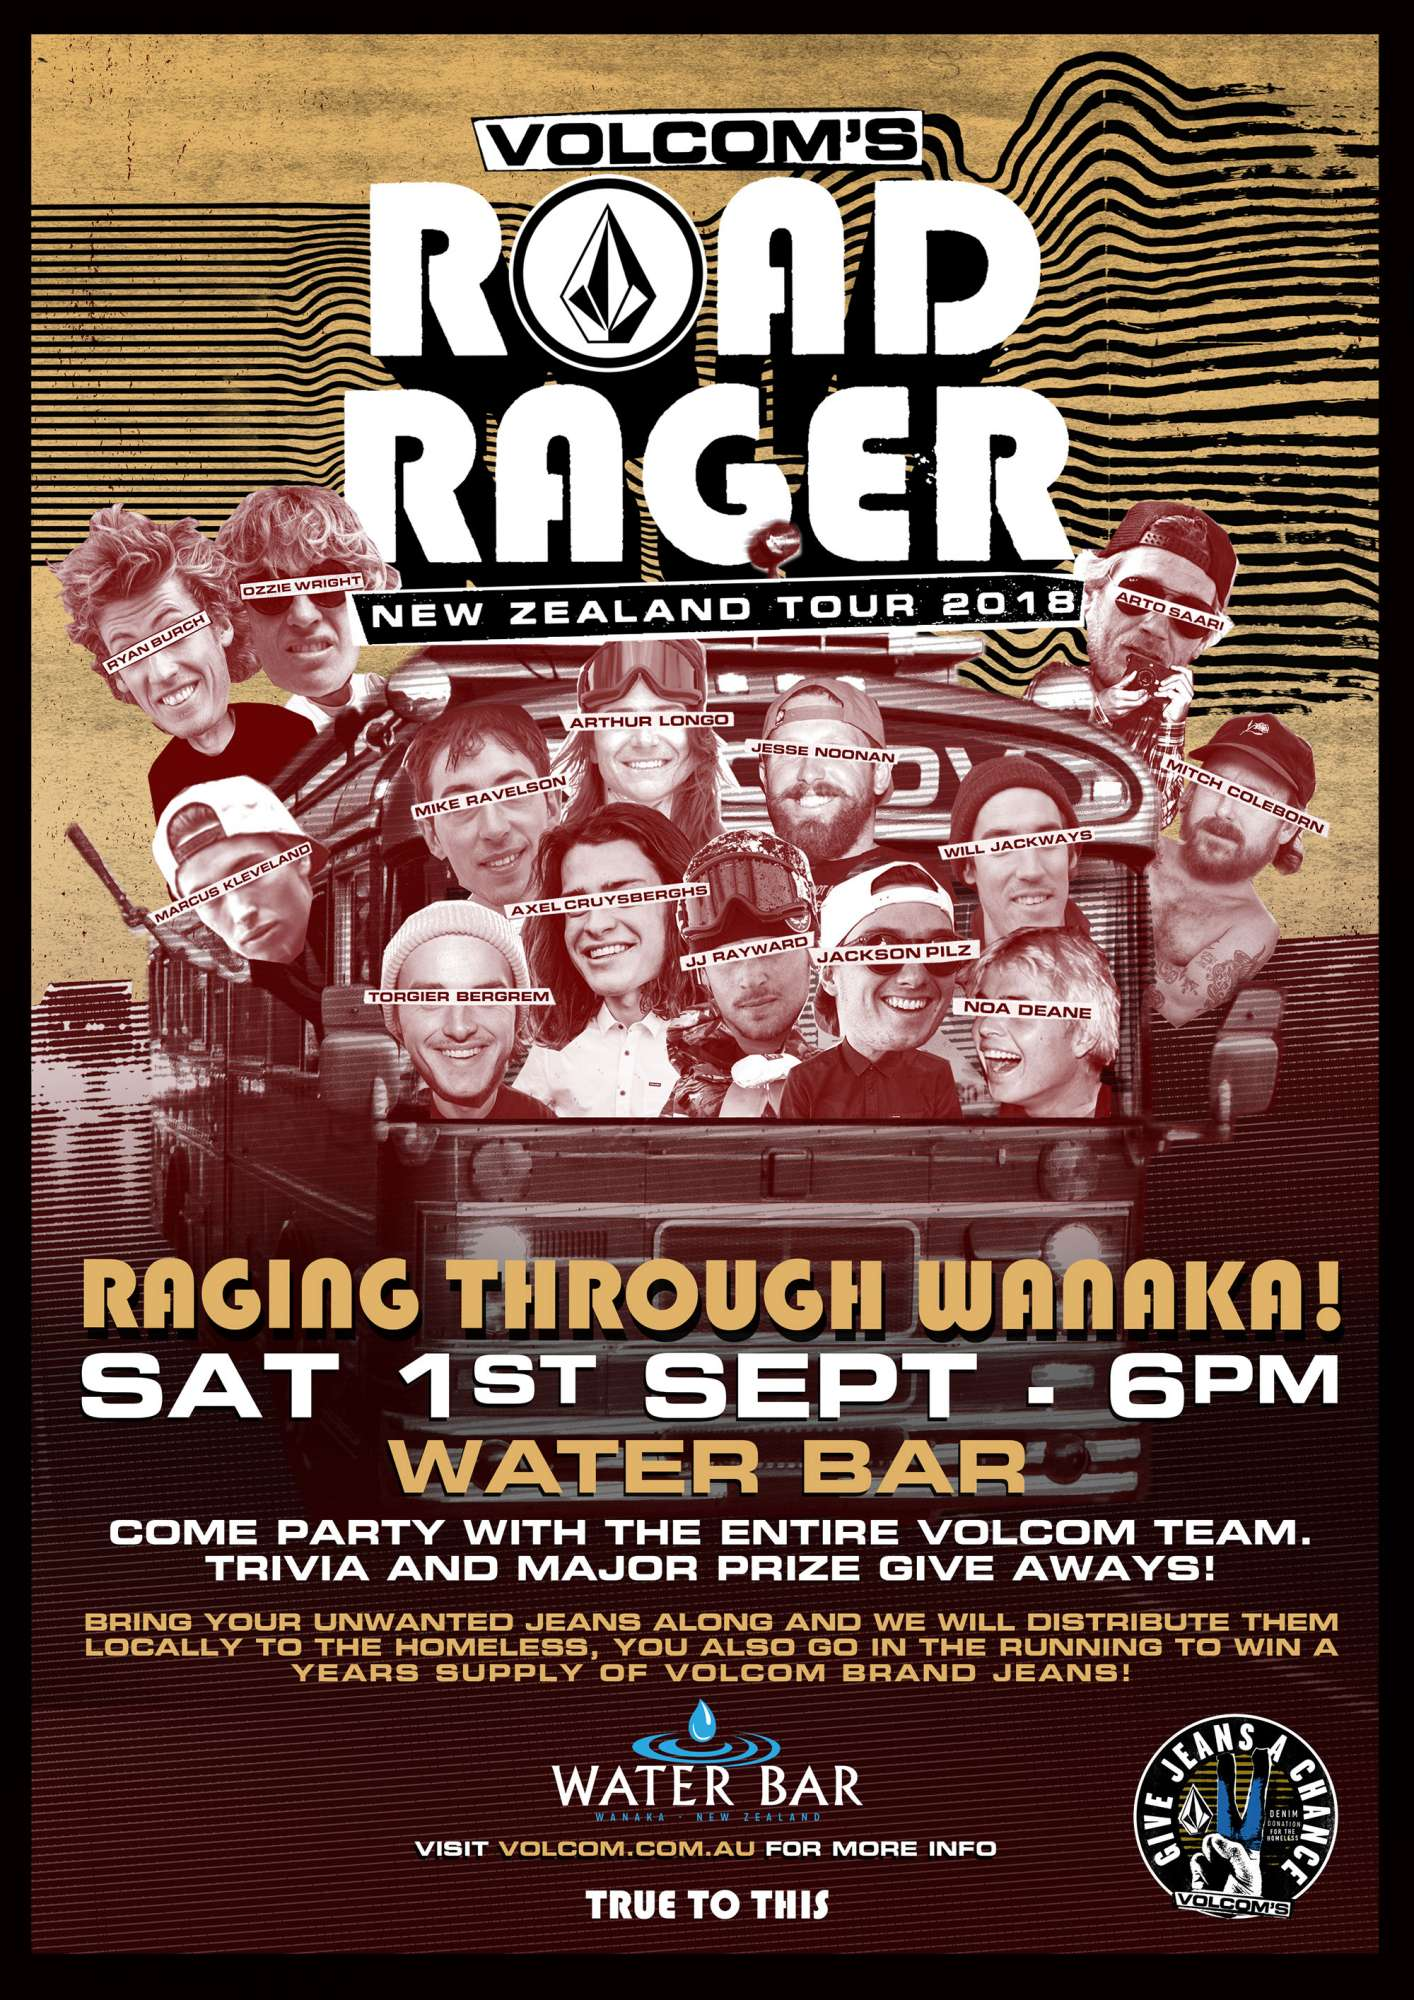 Volcom Road Rager Wanaka Trivia Night